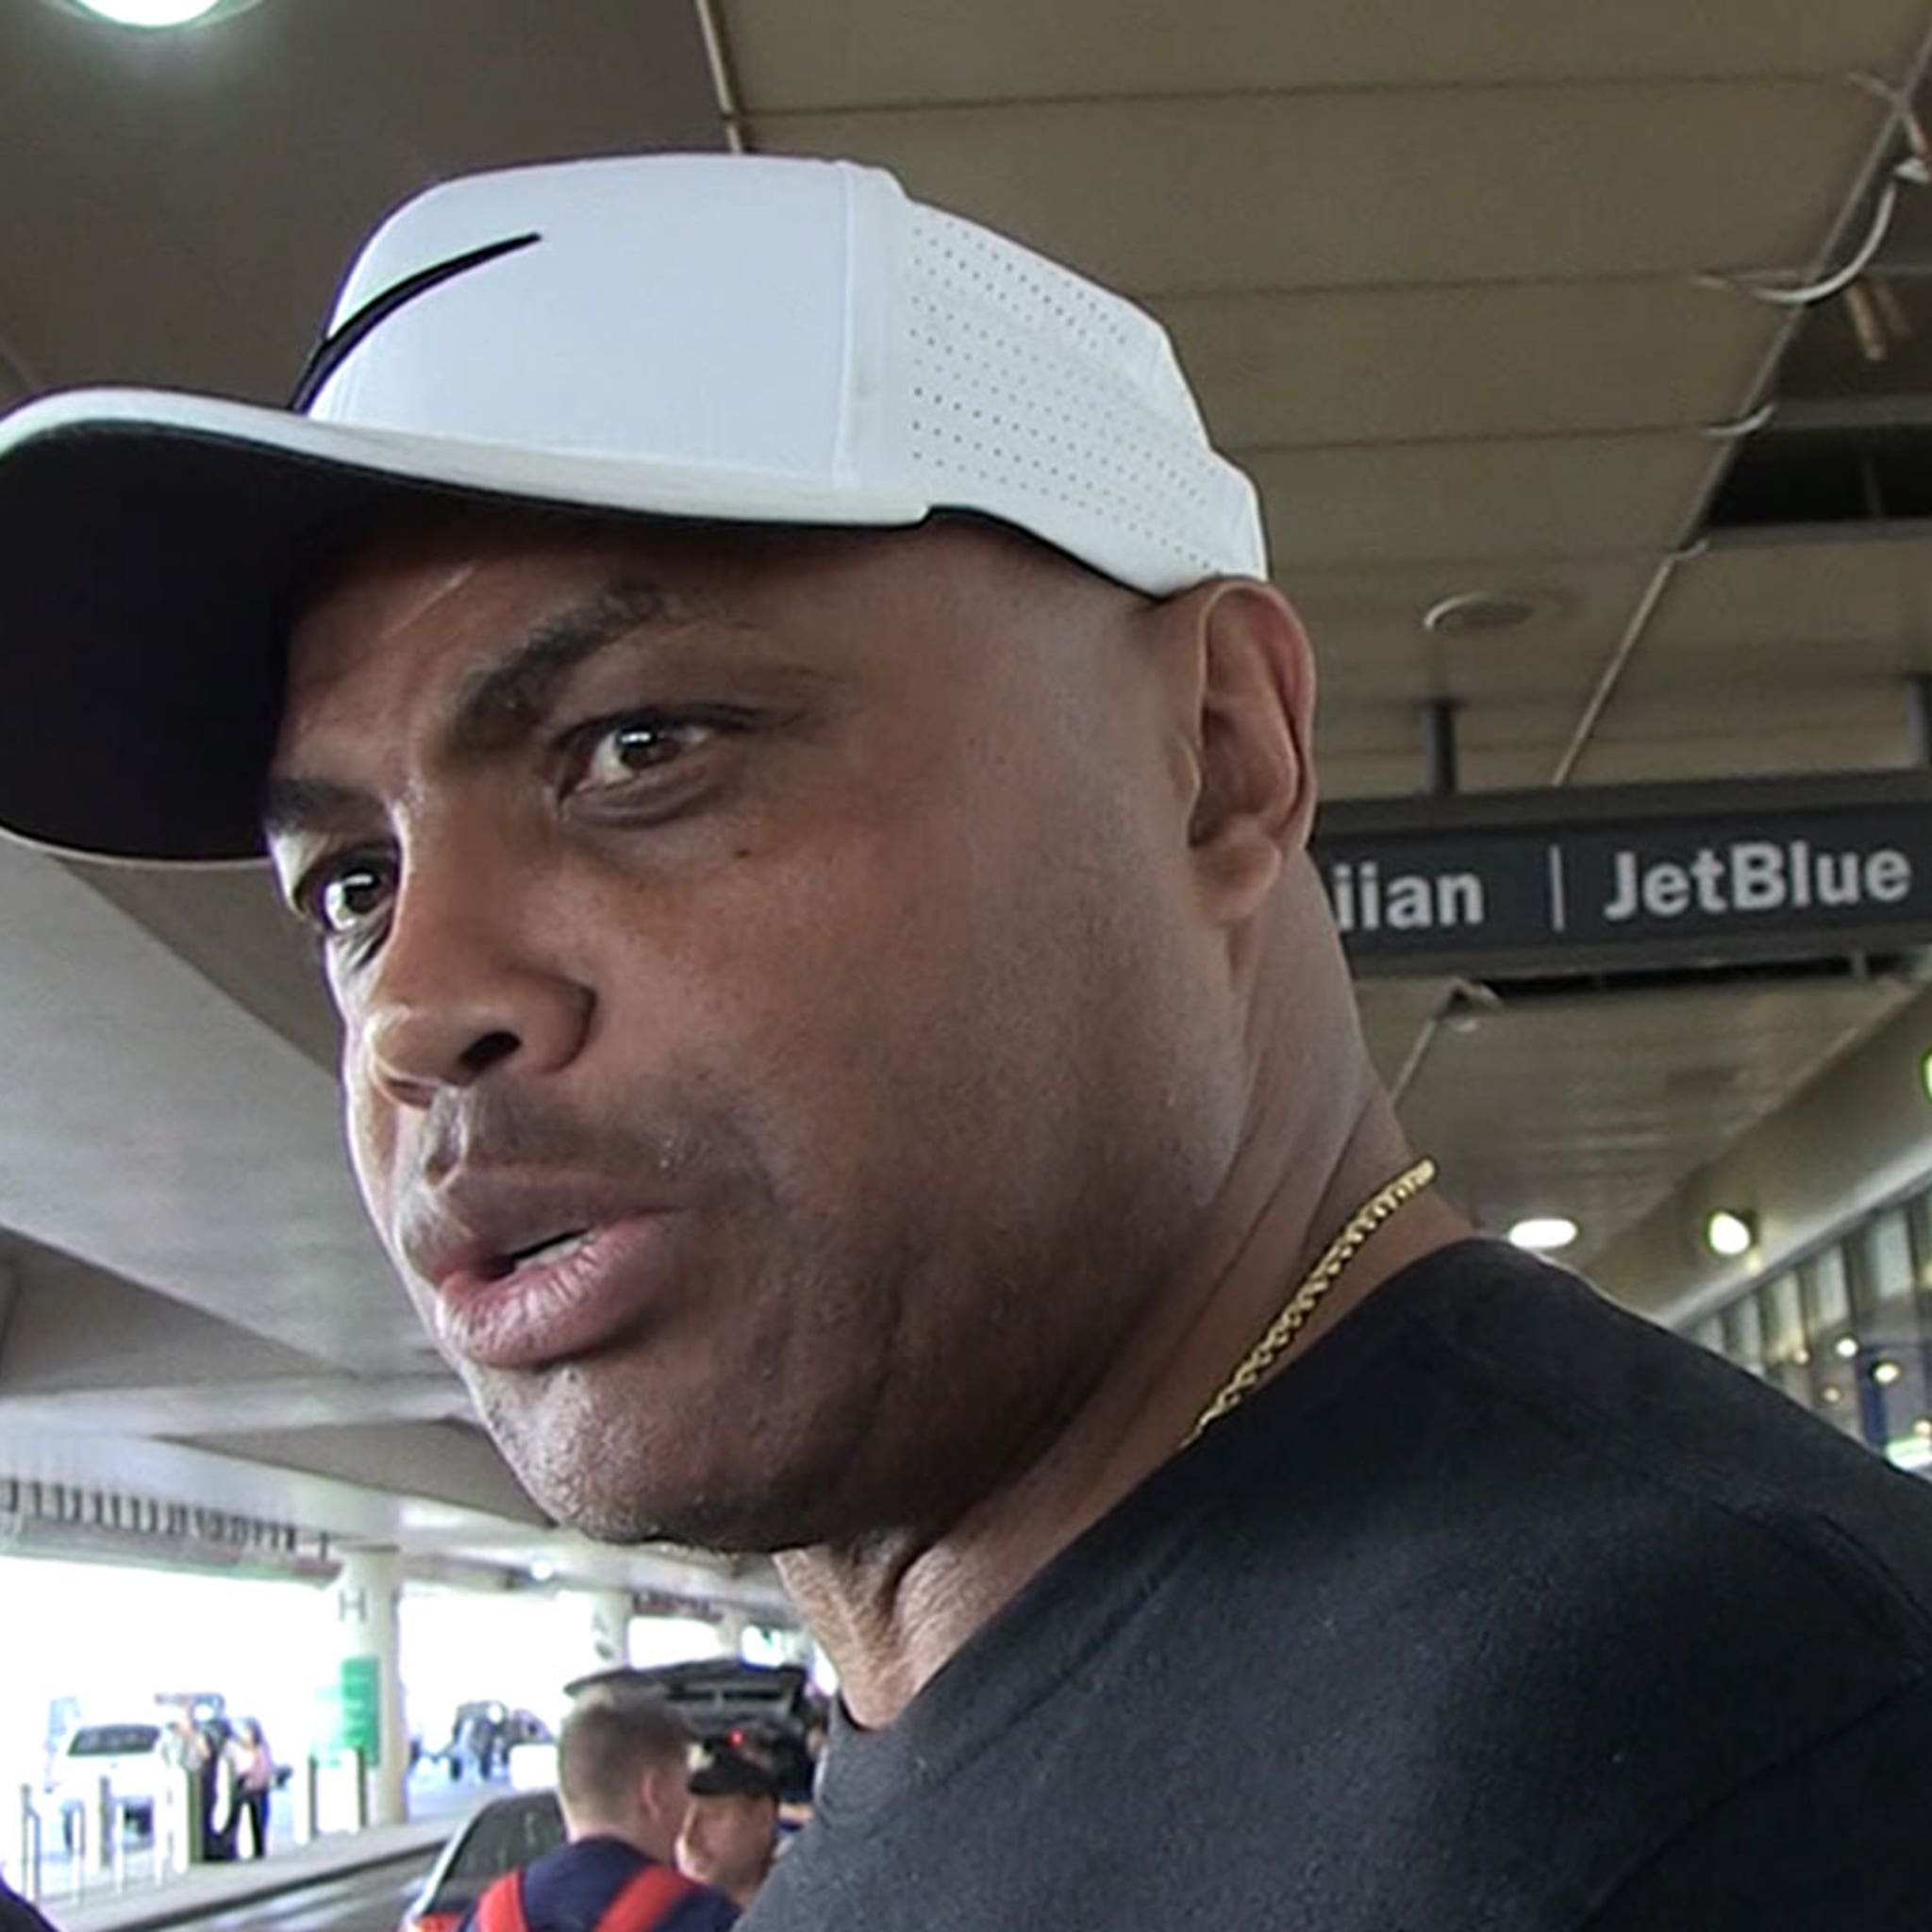 Charles Barkley Defends LeBron James, Says China Criticism Is 'Really Unfair'